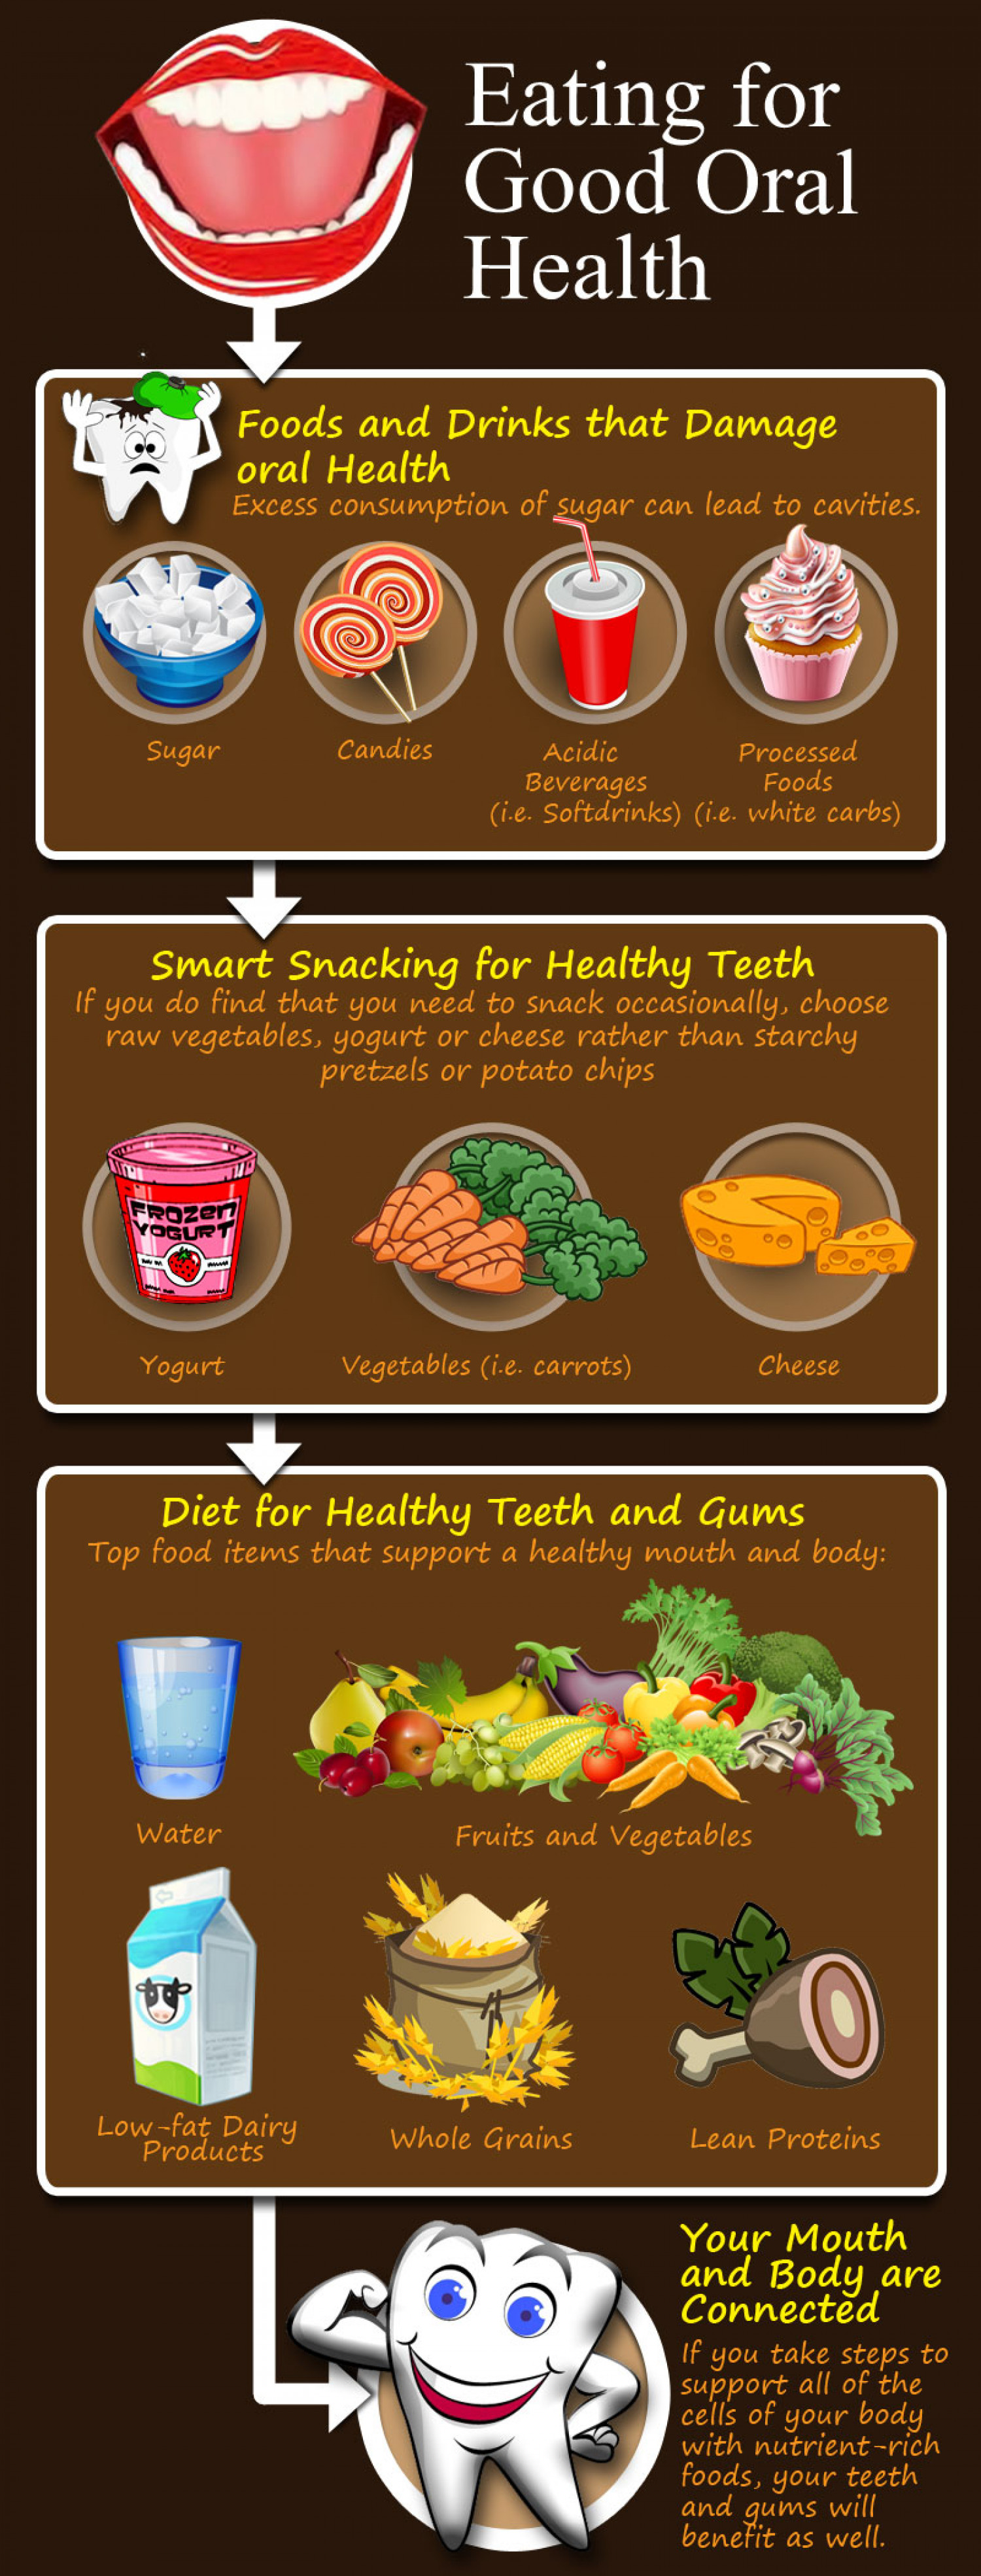 Eating for Good Oral Health Infographic